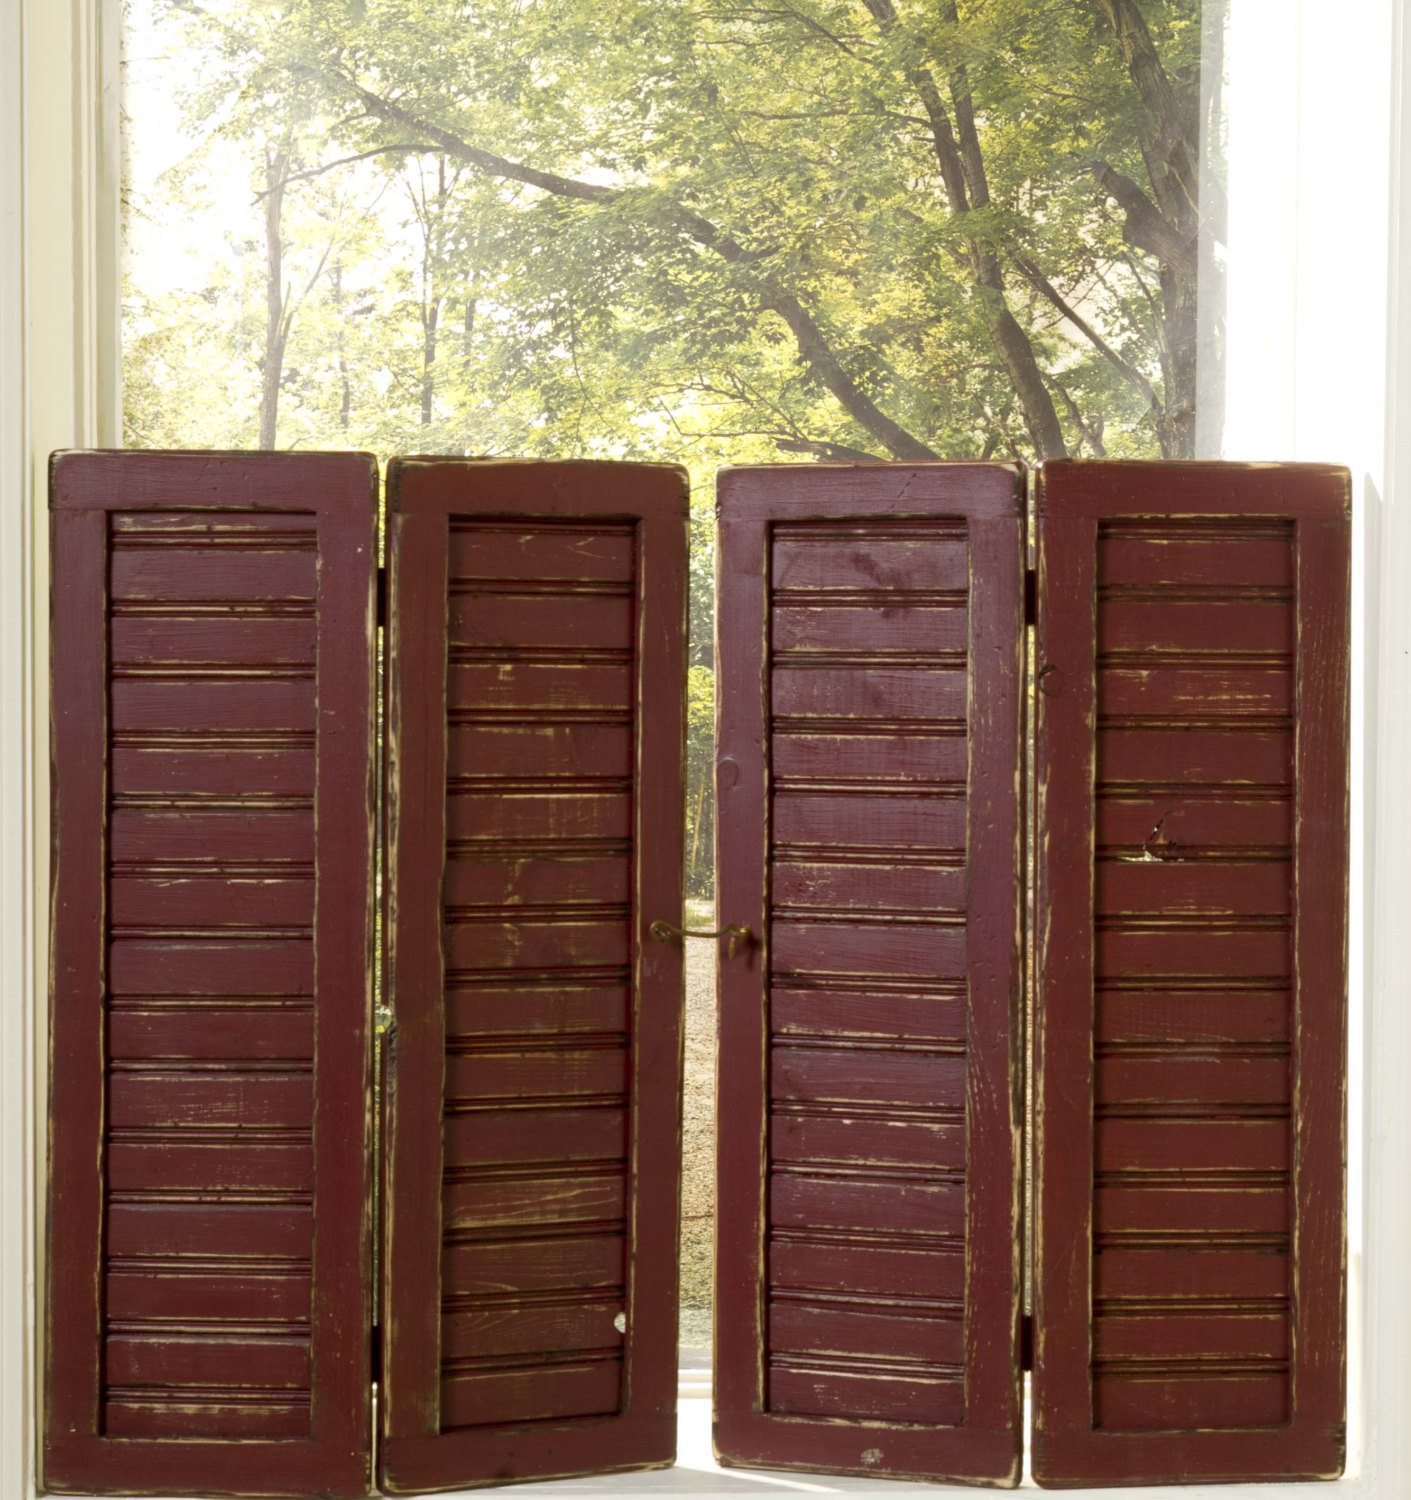 New Style Primitive Beadboard Shutters Sold By Sa Shutter Mill